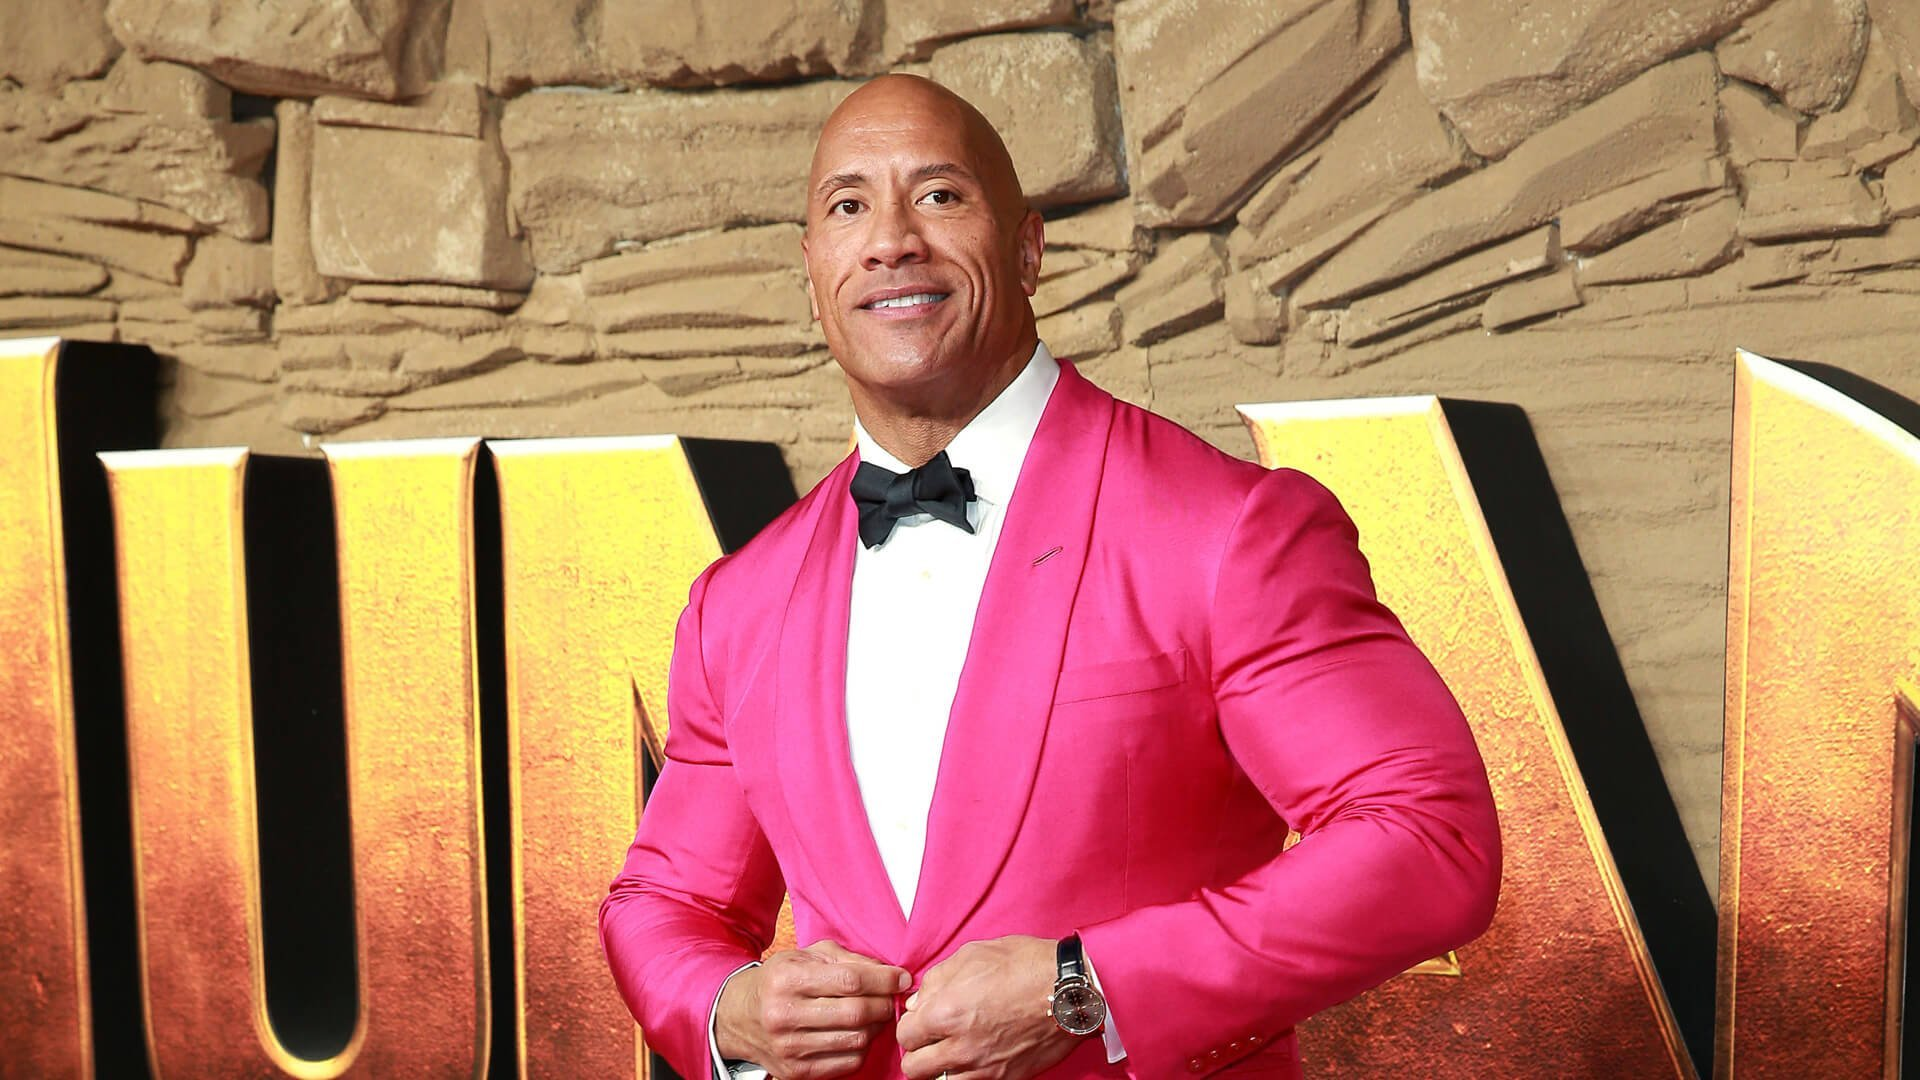 How rich are Dwayne 'The Rock' Johnson and your other favorite stars?